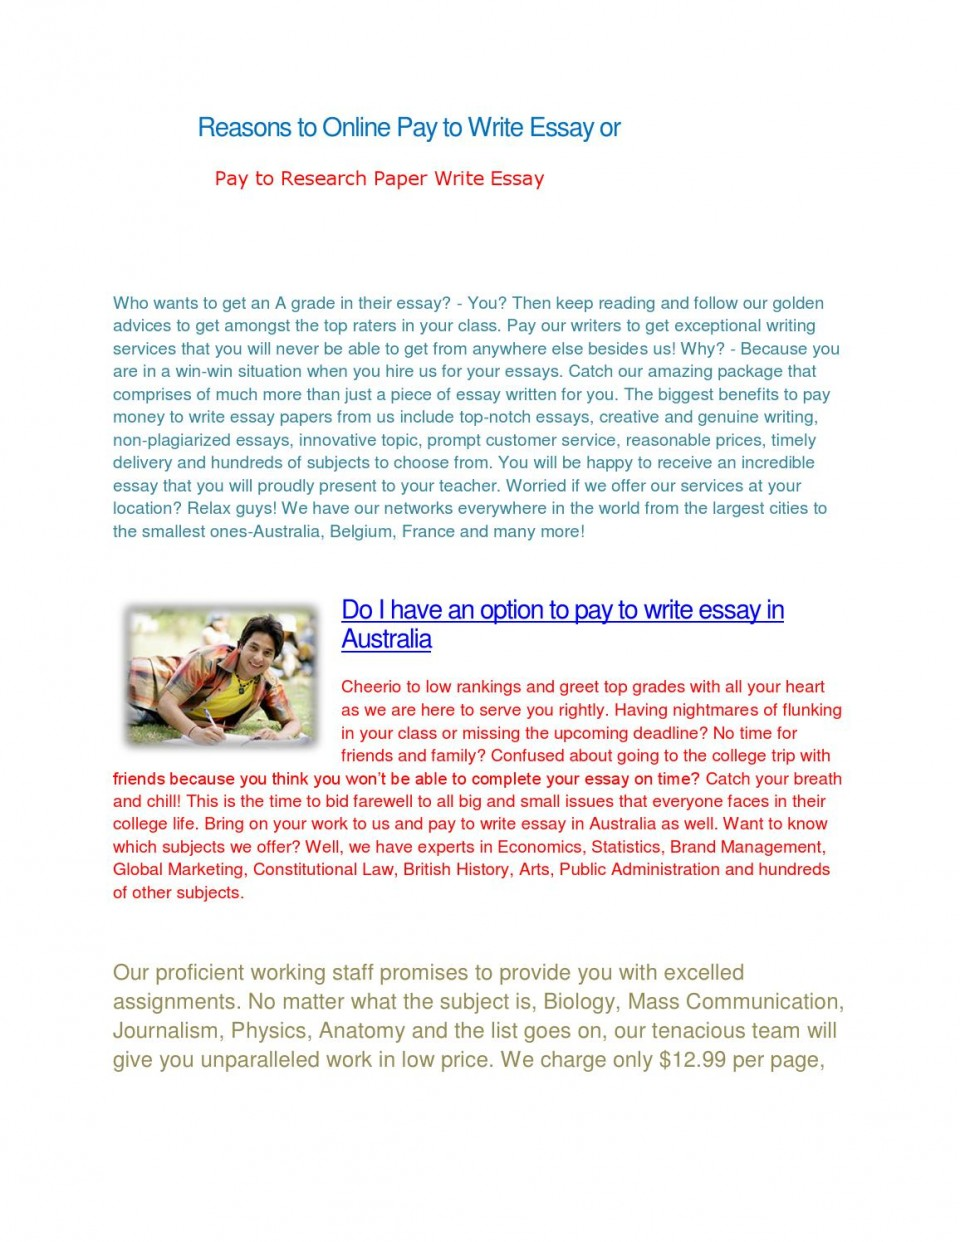 013 Research Paper Page 1 Pay For Stupendous Papers Gap Performance Why Do You Have To 960